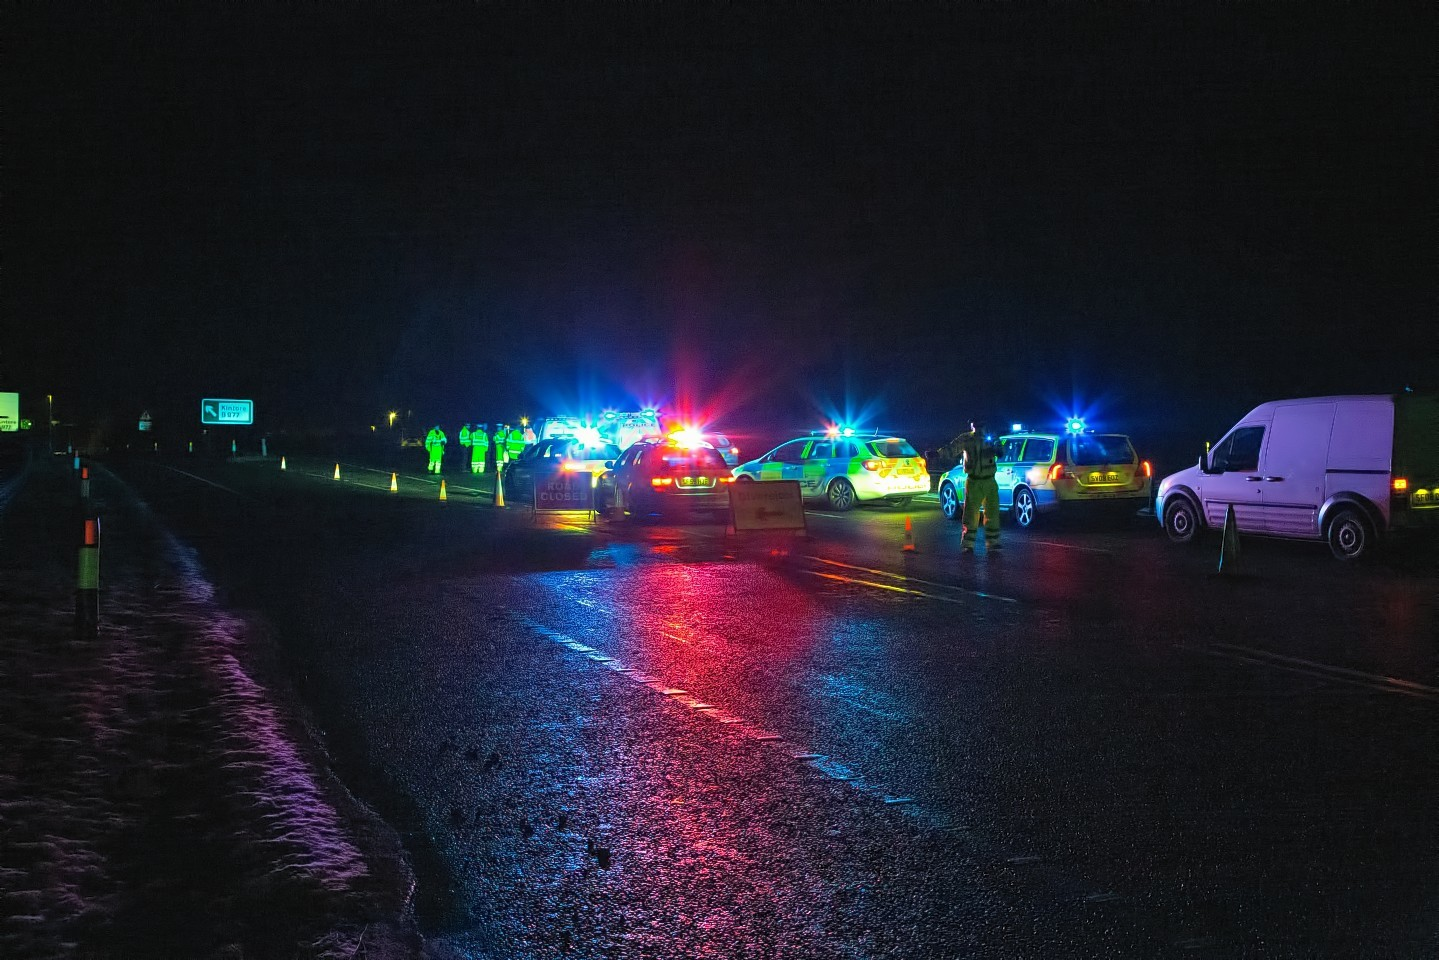 The A96 has reopened following a fatal accident